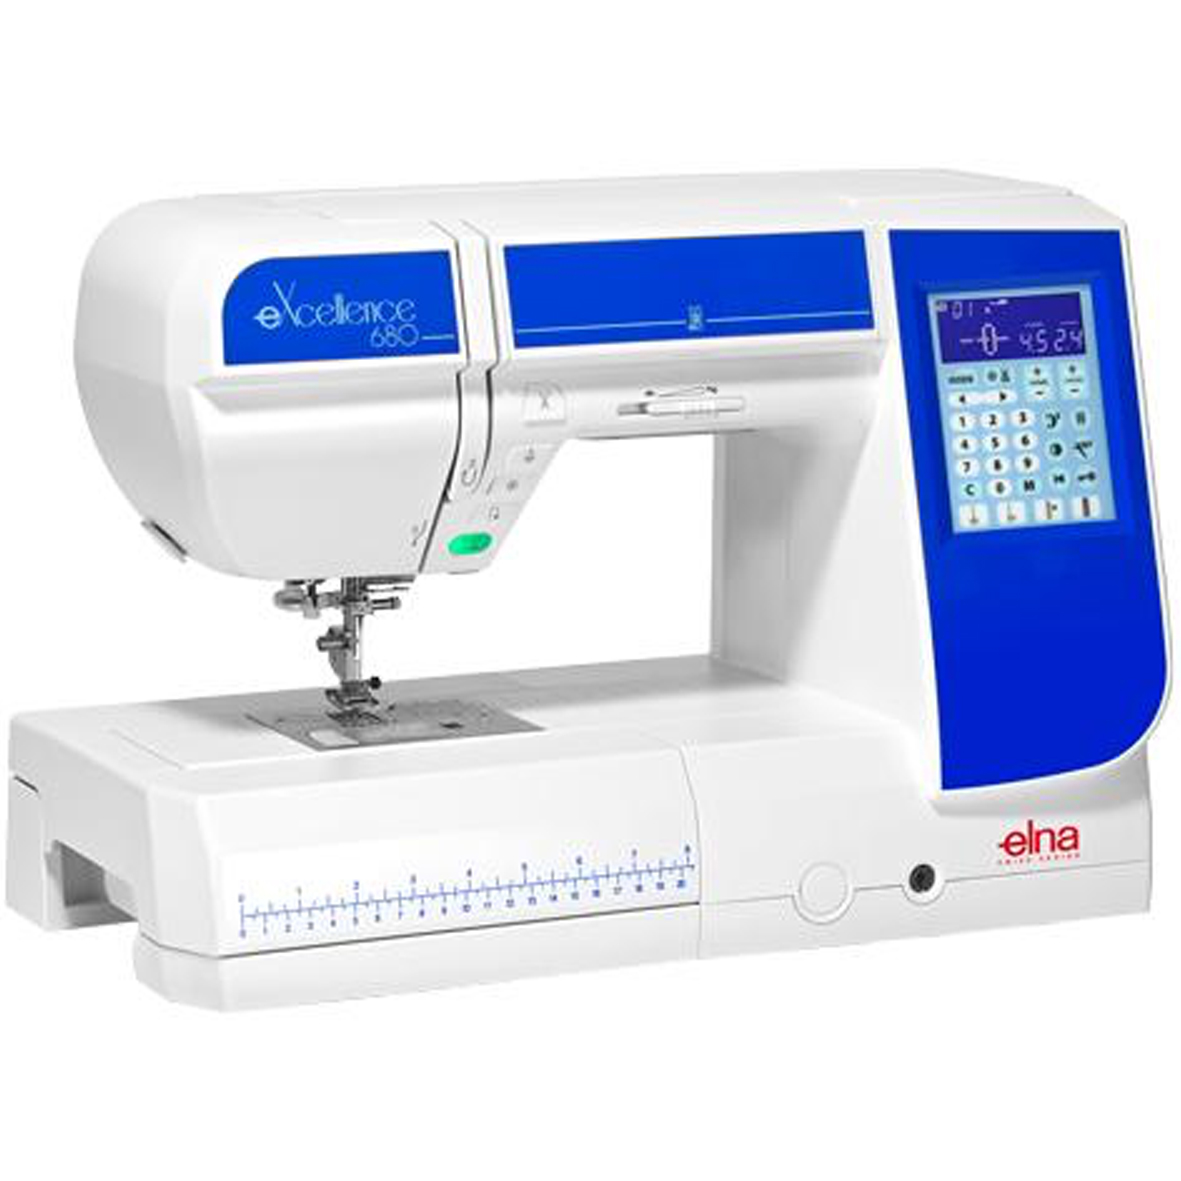 Elna Sewing Machines Review Related Keywords & Suggestions - Elna